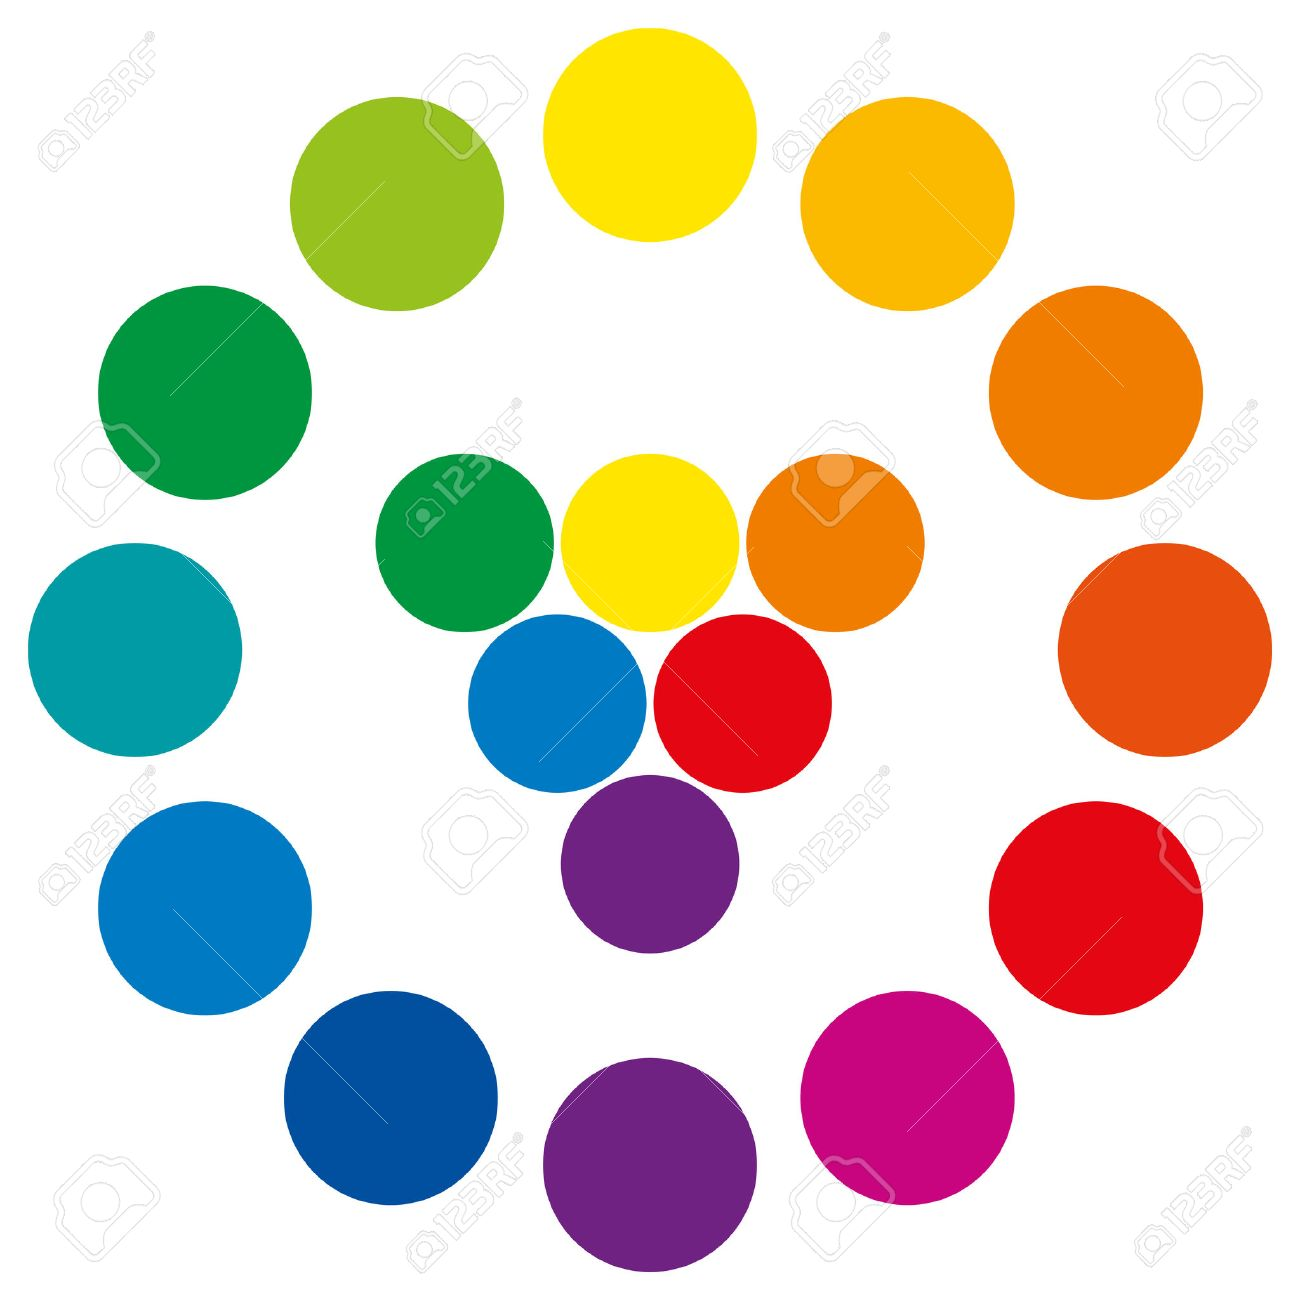 Color Wheel With Circles, Showing The Complementary Colors That ...